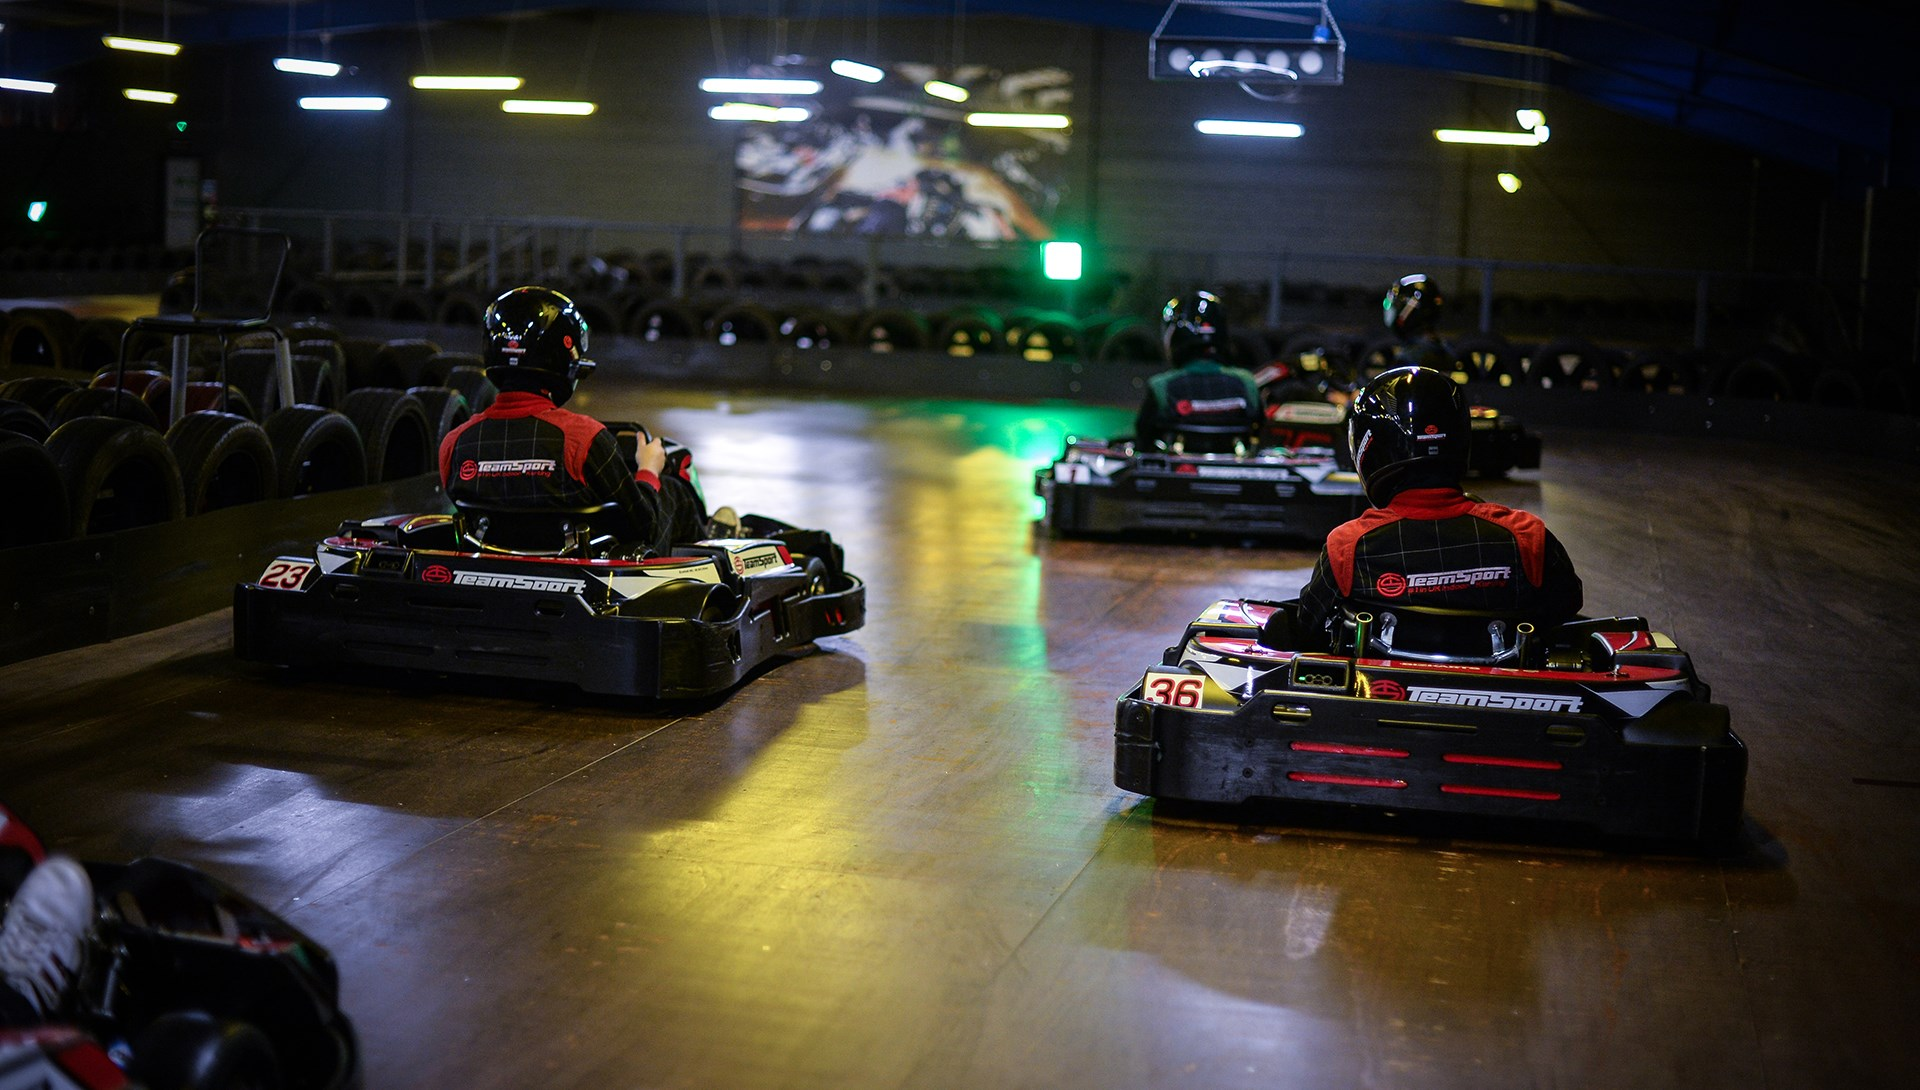 Go Kart Racing Events - Adult groups of 8+